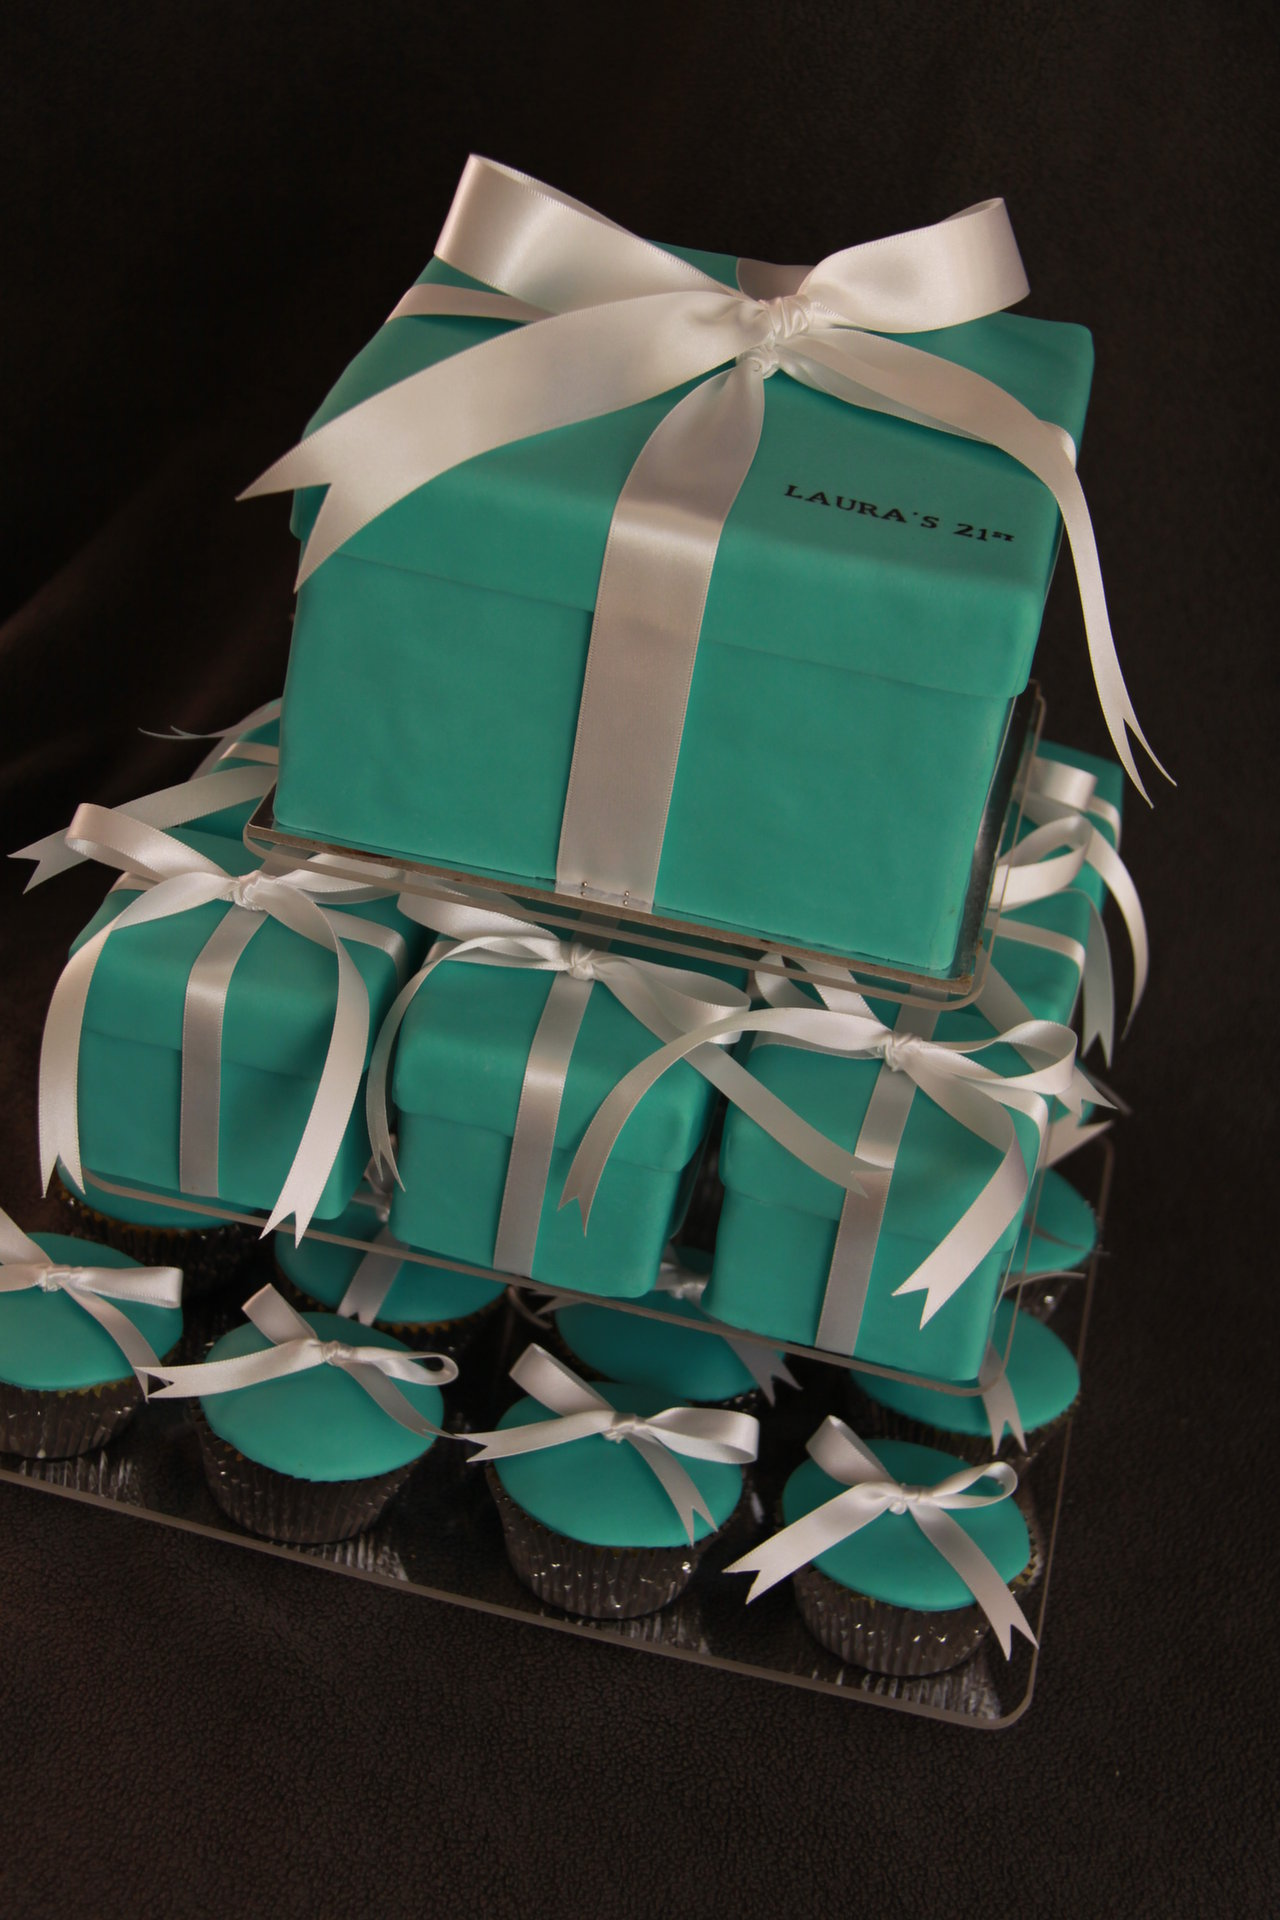 Tiffany's Boxes